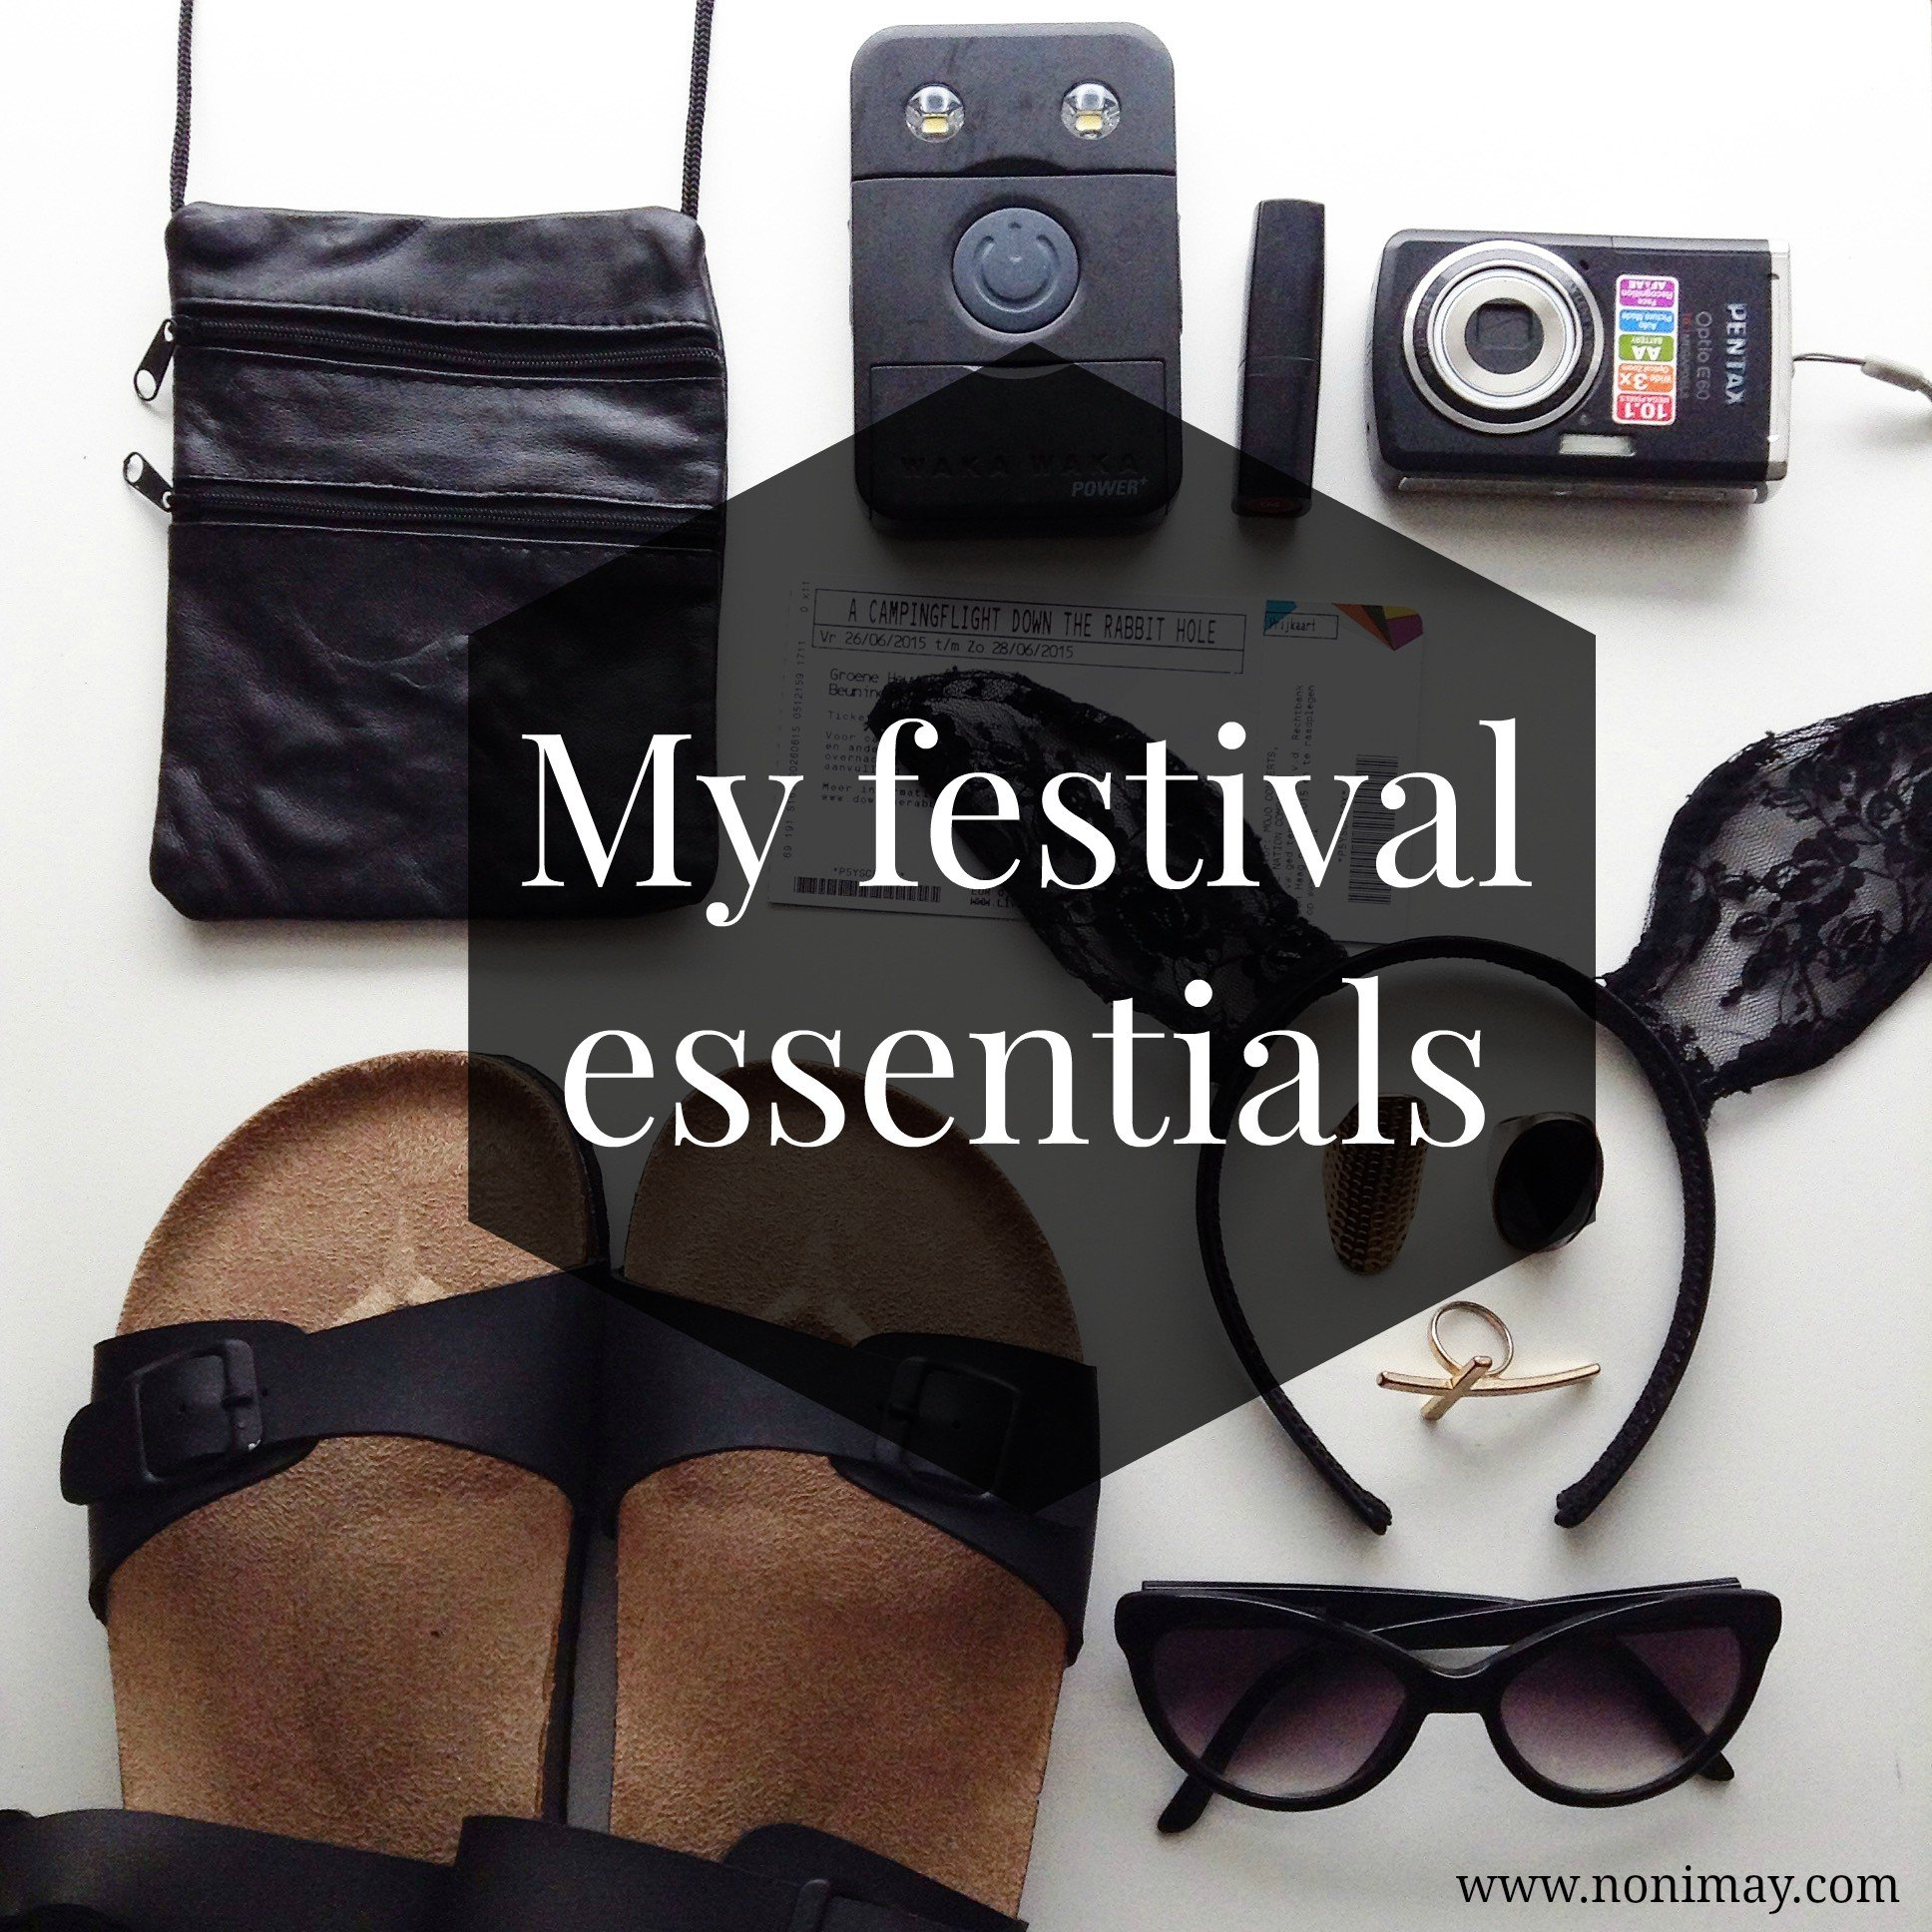 My festival essentials